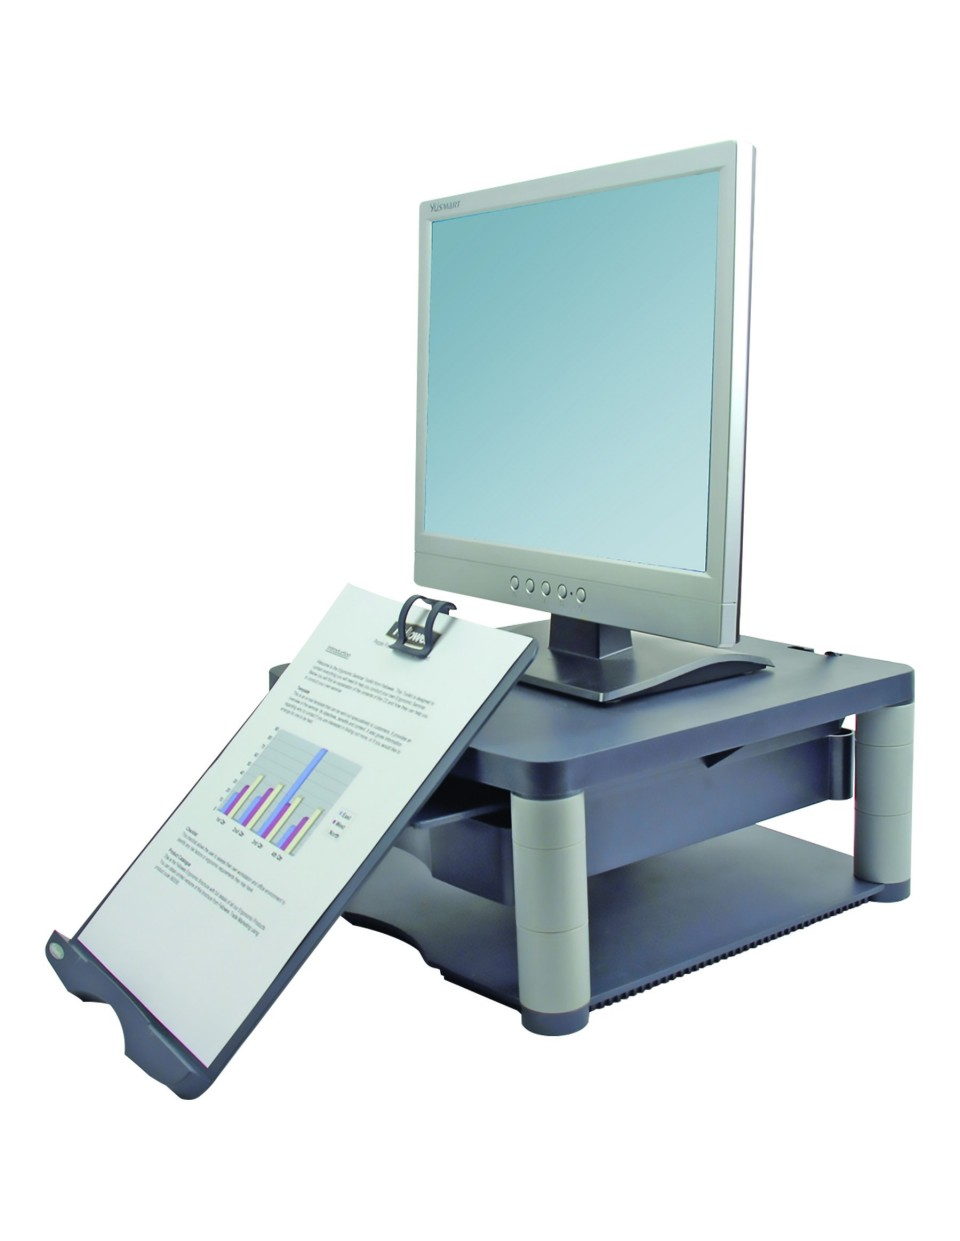 Postolje za monitor Premium Plus-Grafit Fellowes